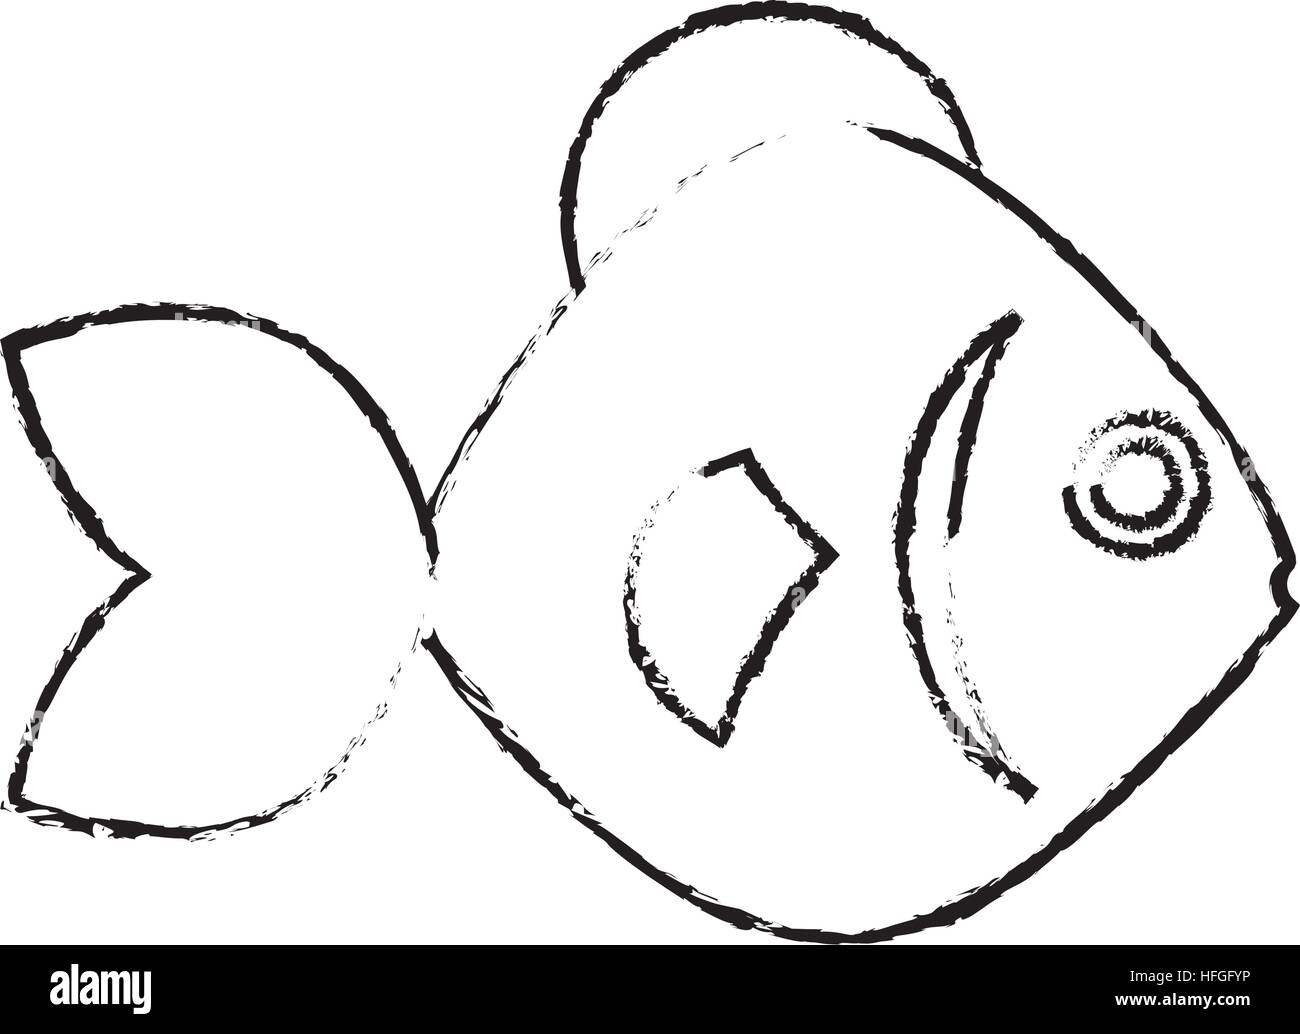 sea fish icon - Stock Image